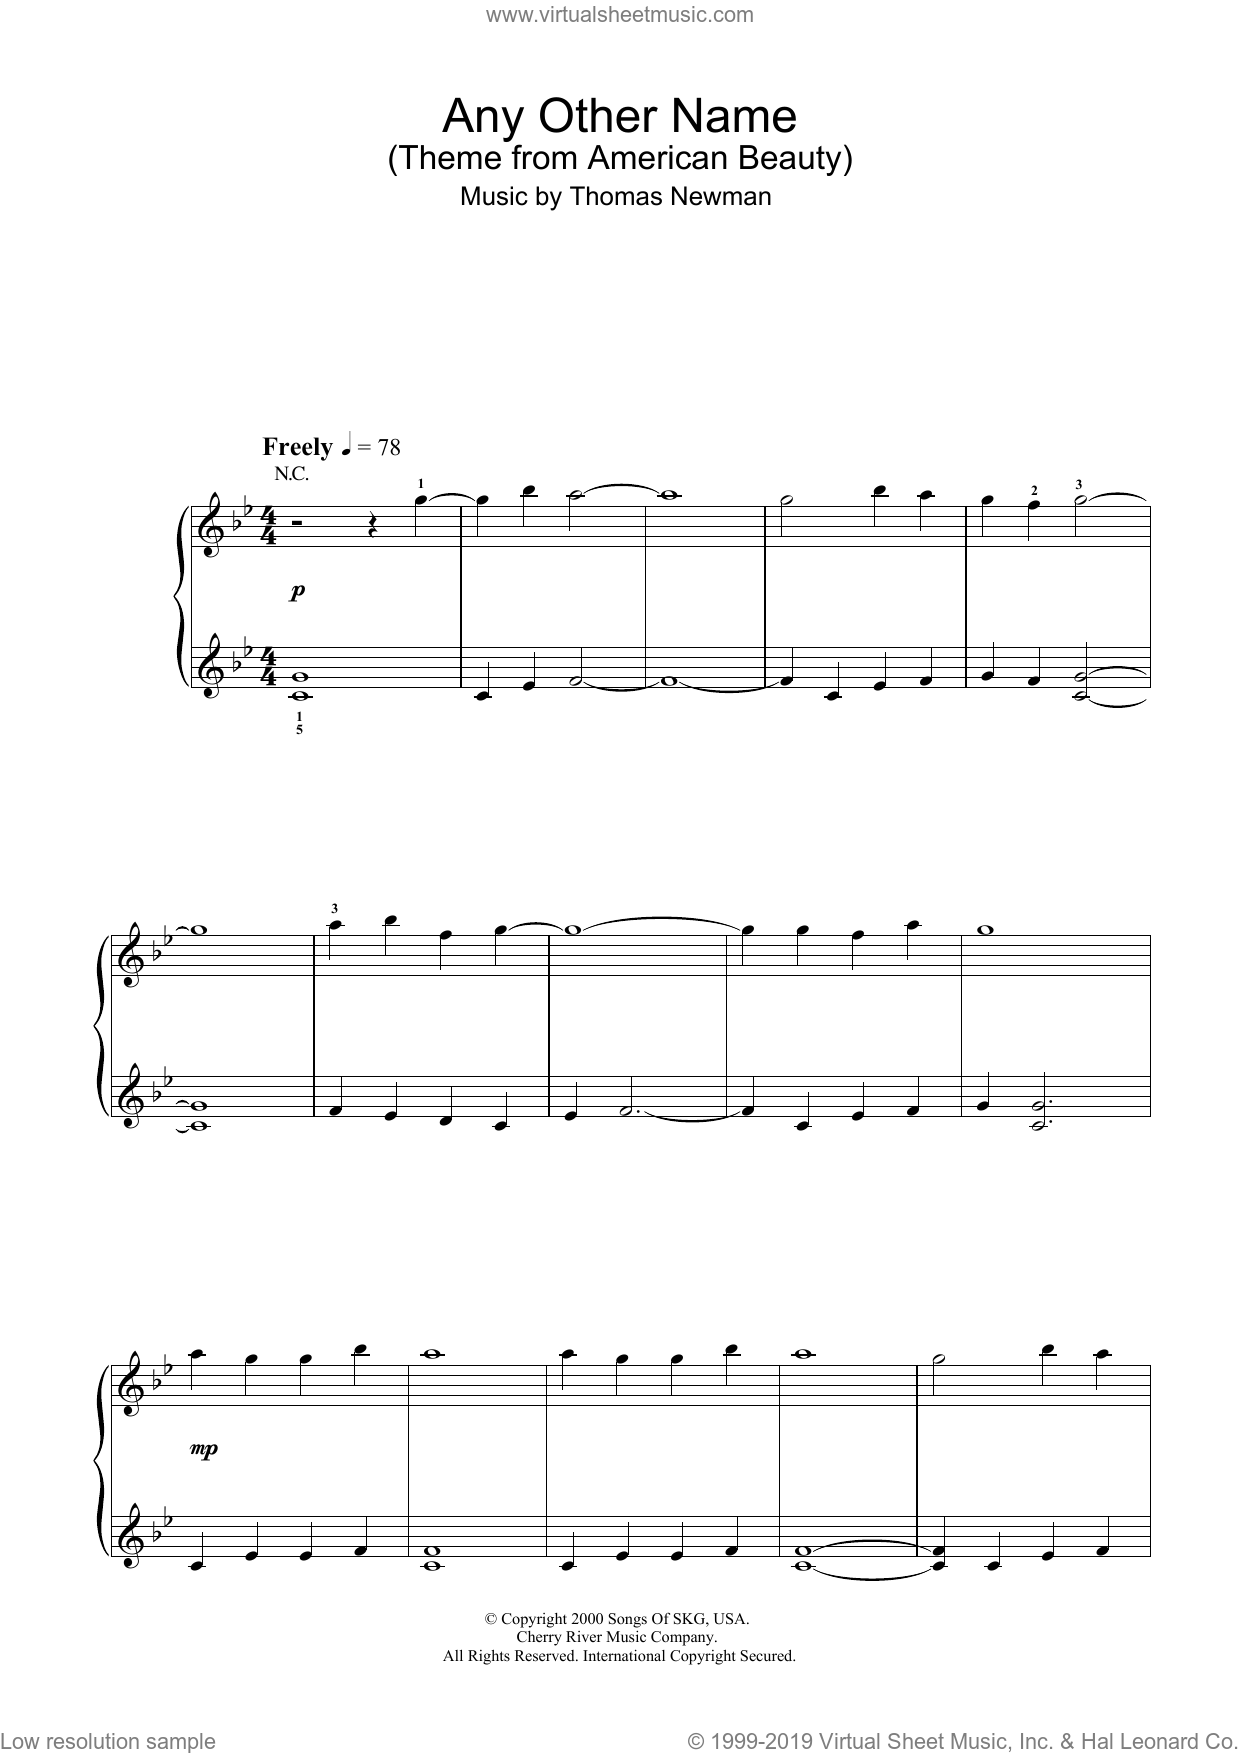 Any Other Name (theme from American Beauty) sheet music for voice, piano or guitar by Thomas Newman